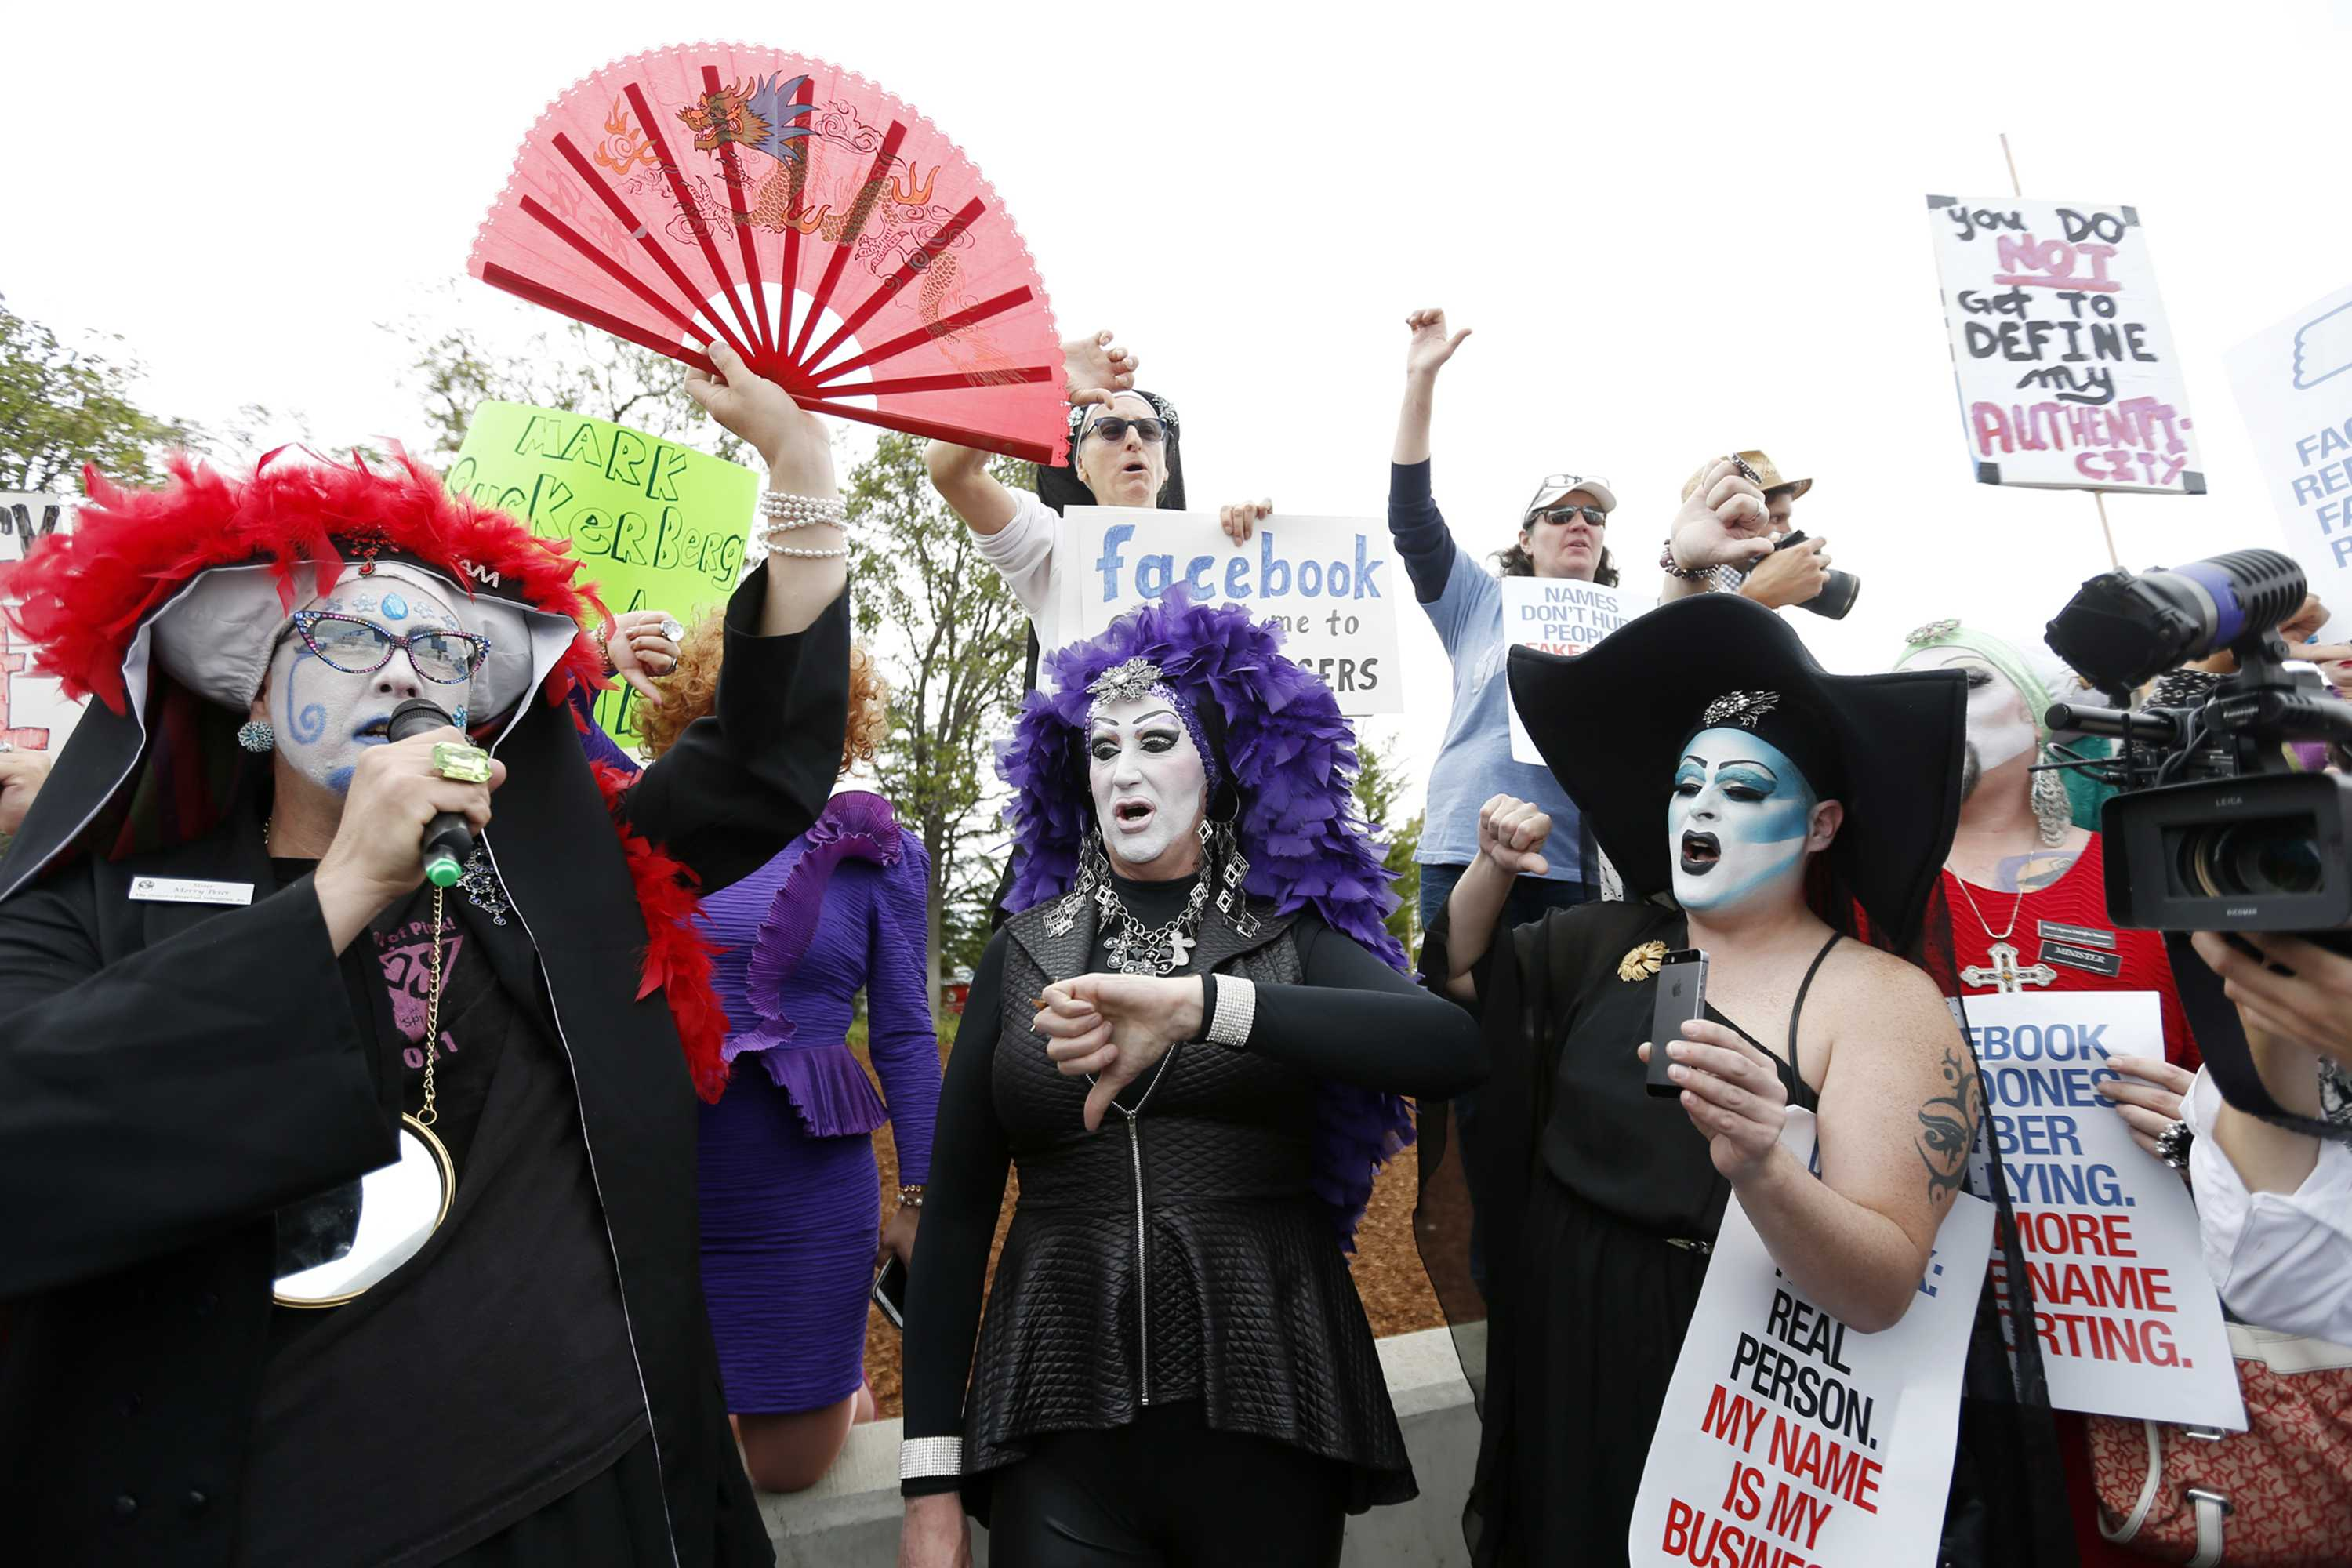 Sister Merry Peter, Sister Roma and Sister Indica, members of the Sisters of Perpetual Indulgence, Inc., give a thumbs down during a protest across from Facebook to protest a rule that requires Facebook users provide their real names on Monday, June 1, 2015, in Menlo Park, Calif. (Josie Lepe/Bay Area News Group/TNS)